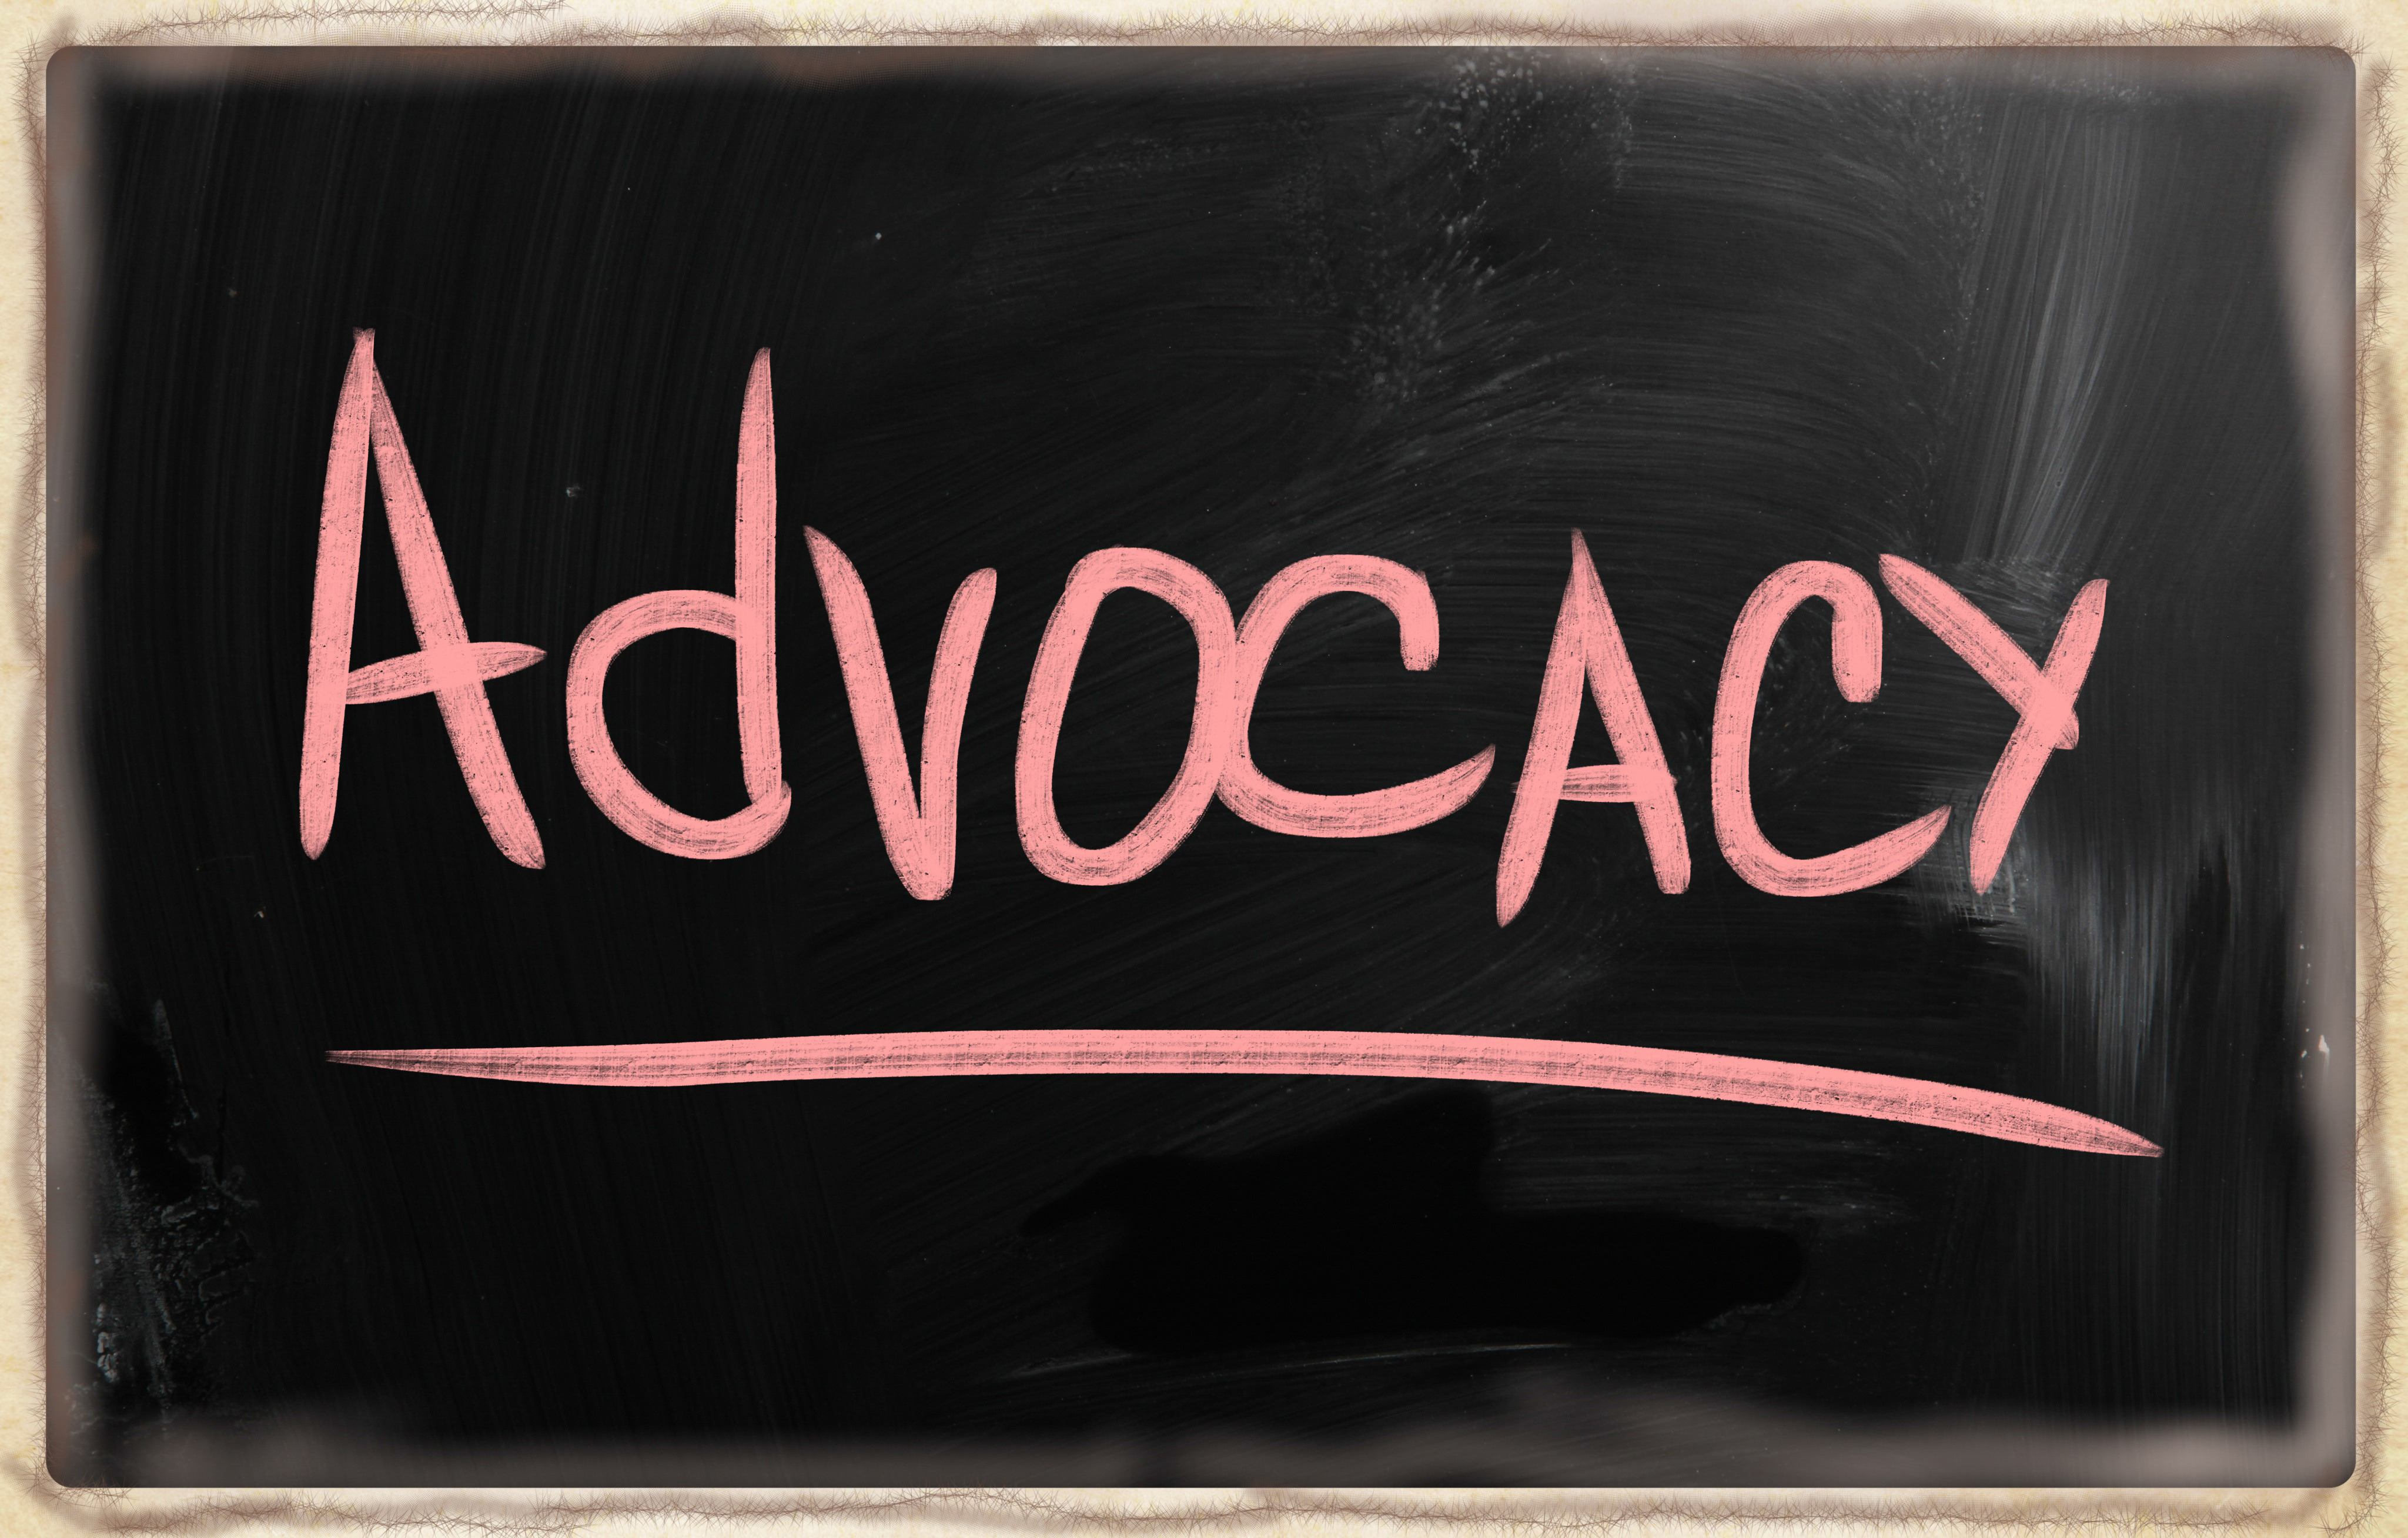 Autistic Advocacy – can we ever take someone's voice away? Opinion